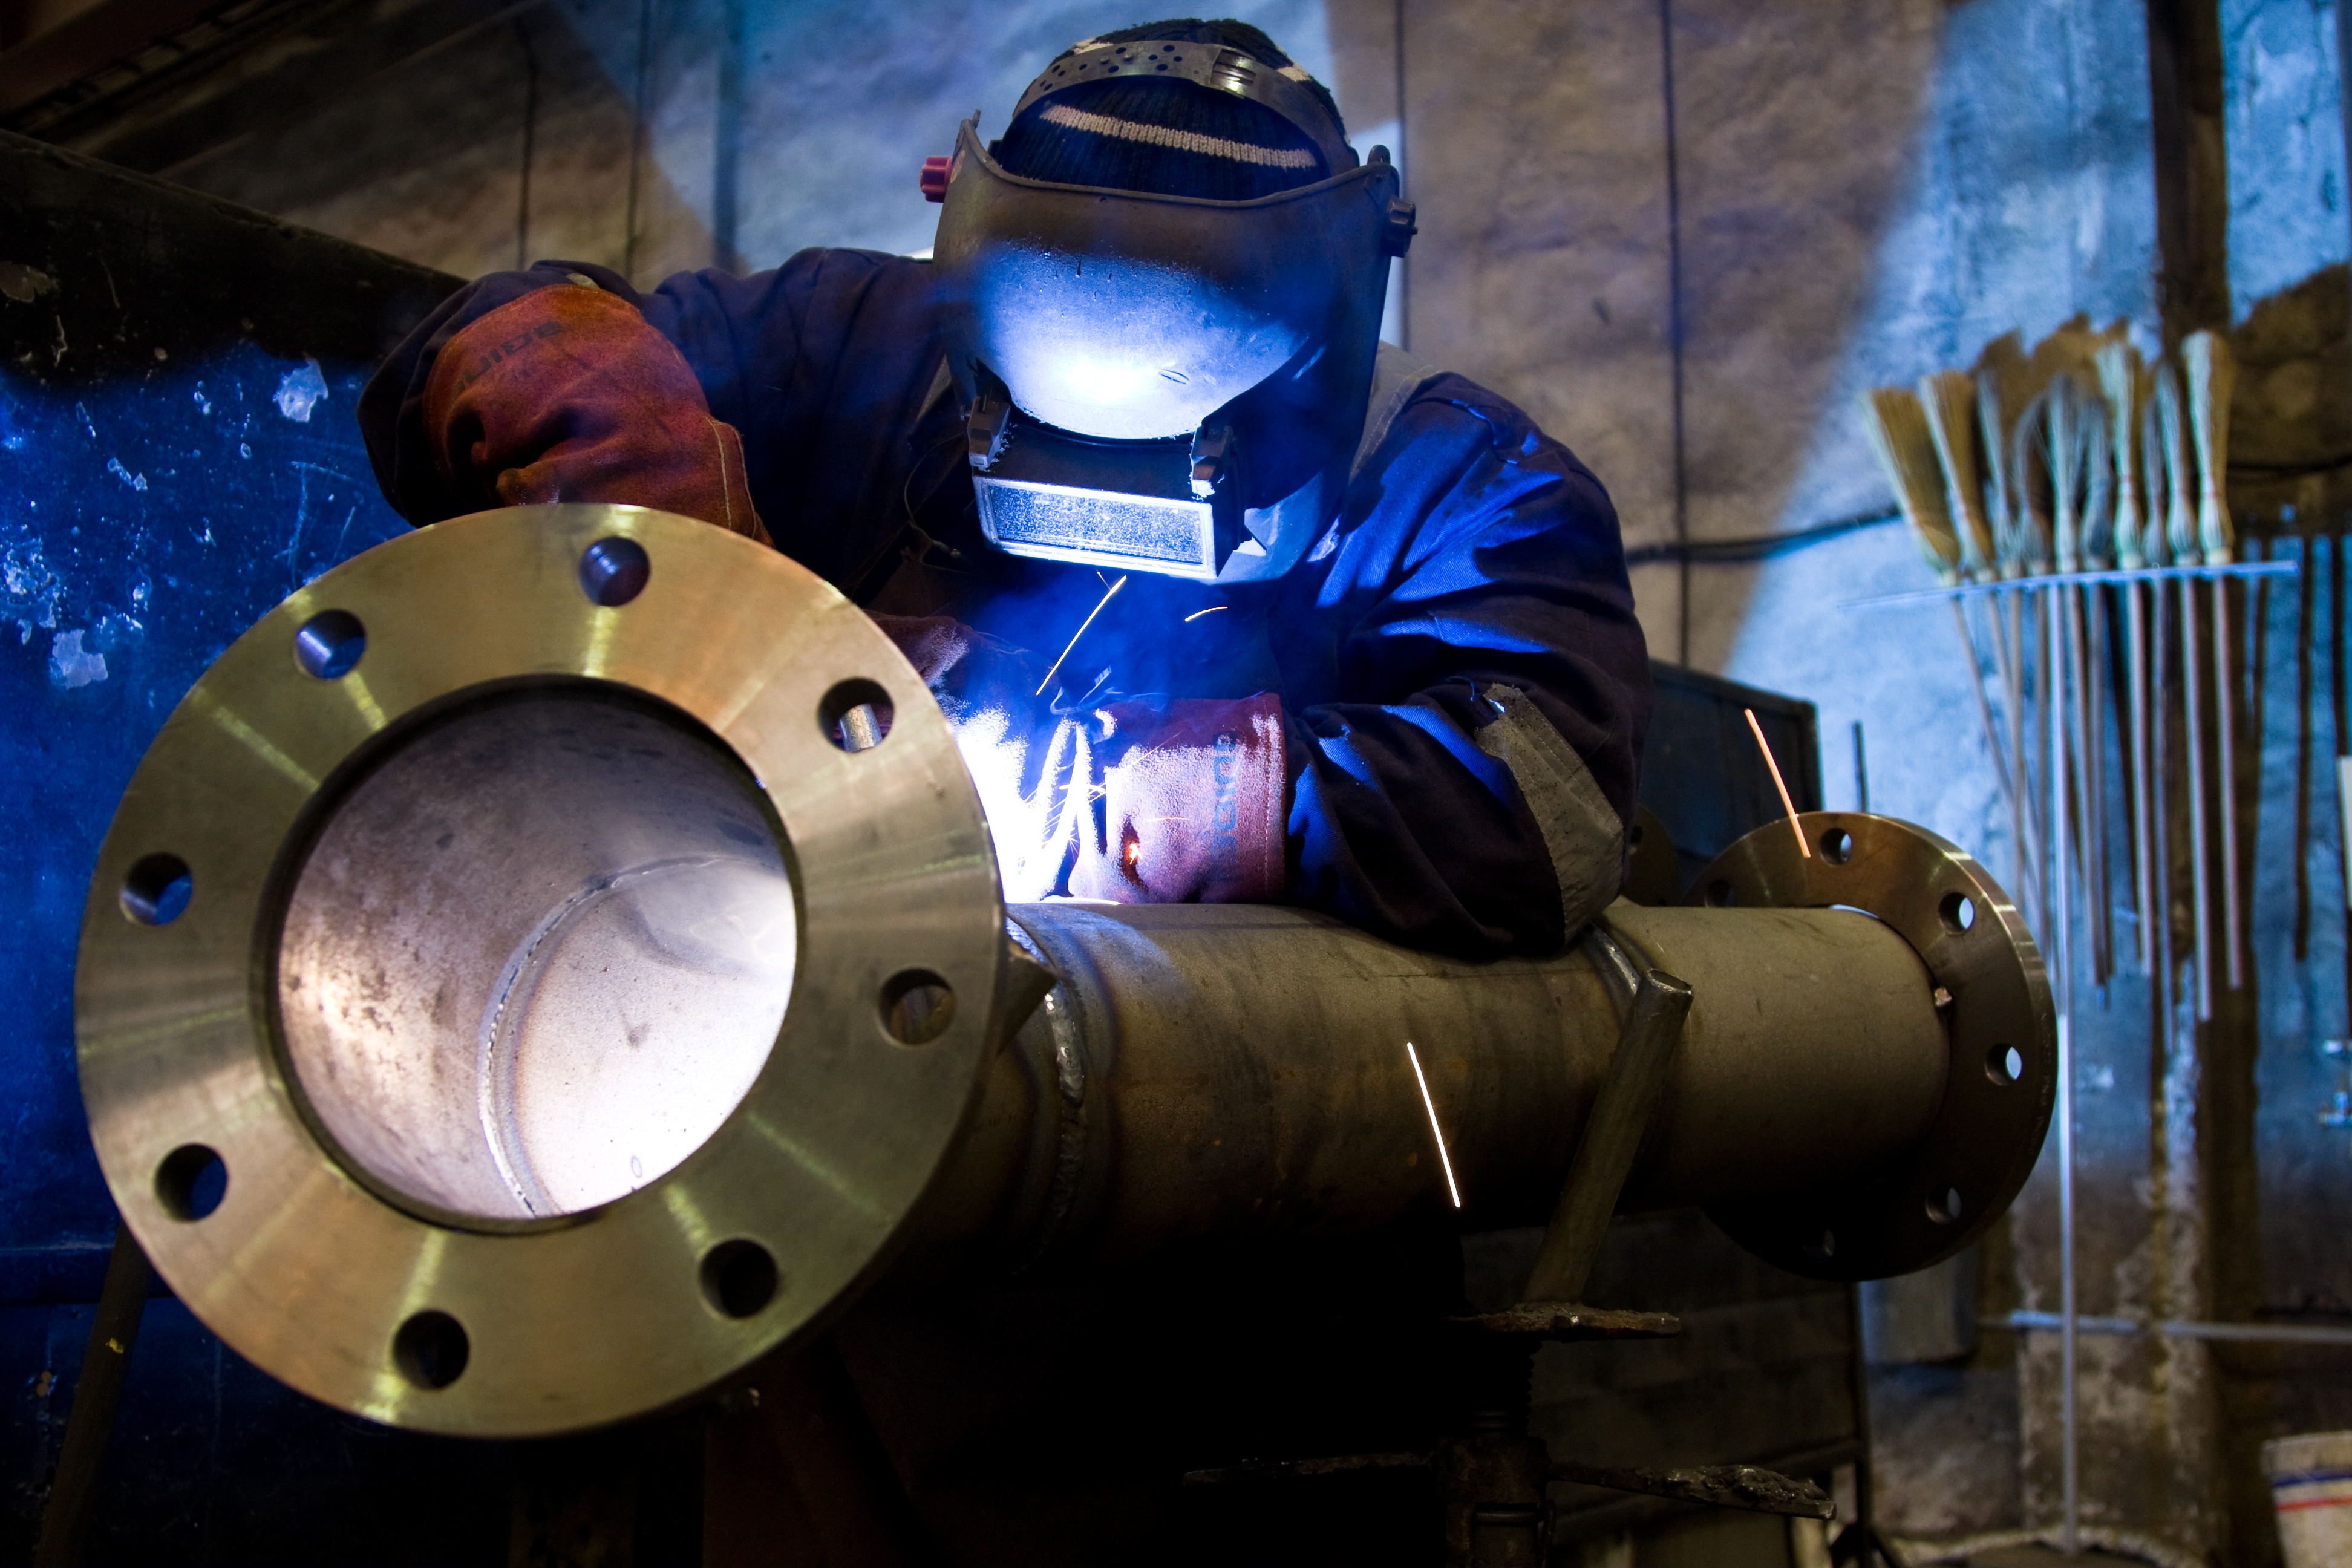 Reidoz Engineering undertake all types of metal fabrication work including welding, cutting, punching and powder coating